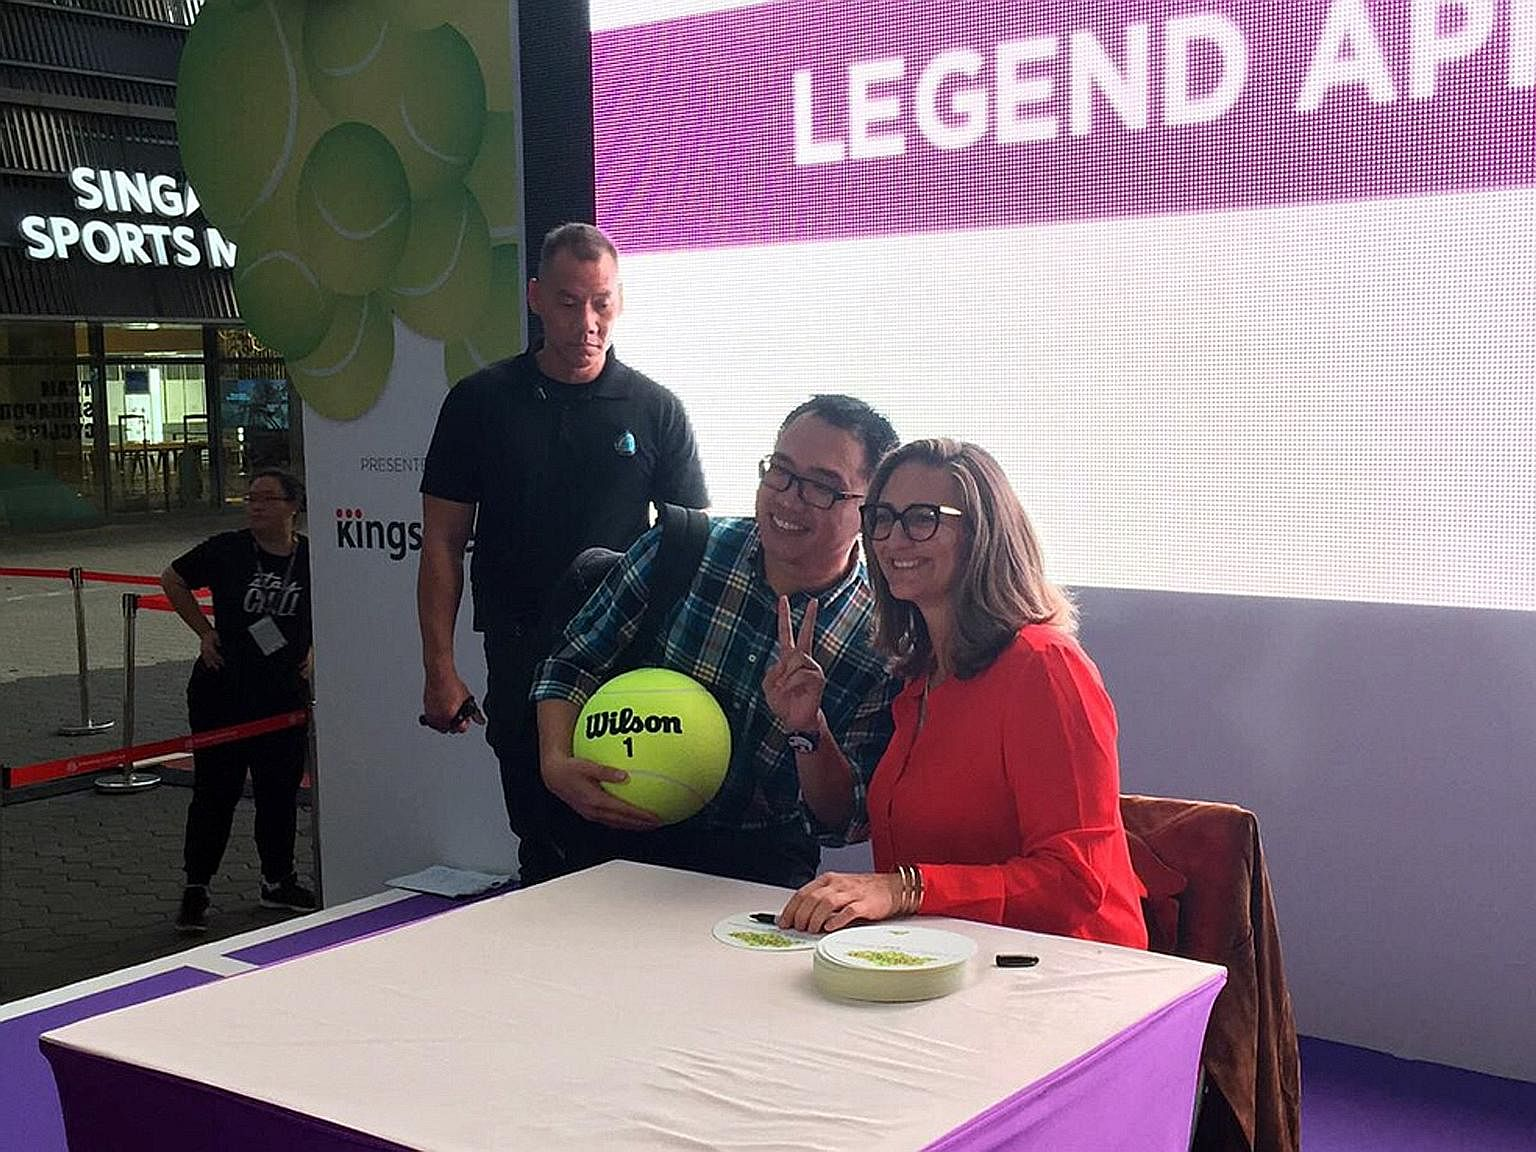 Some lucky fans get the chance to meet two-time Grand Slam winner Mary Pierce at the Fan Village stage.